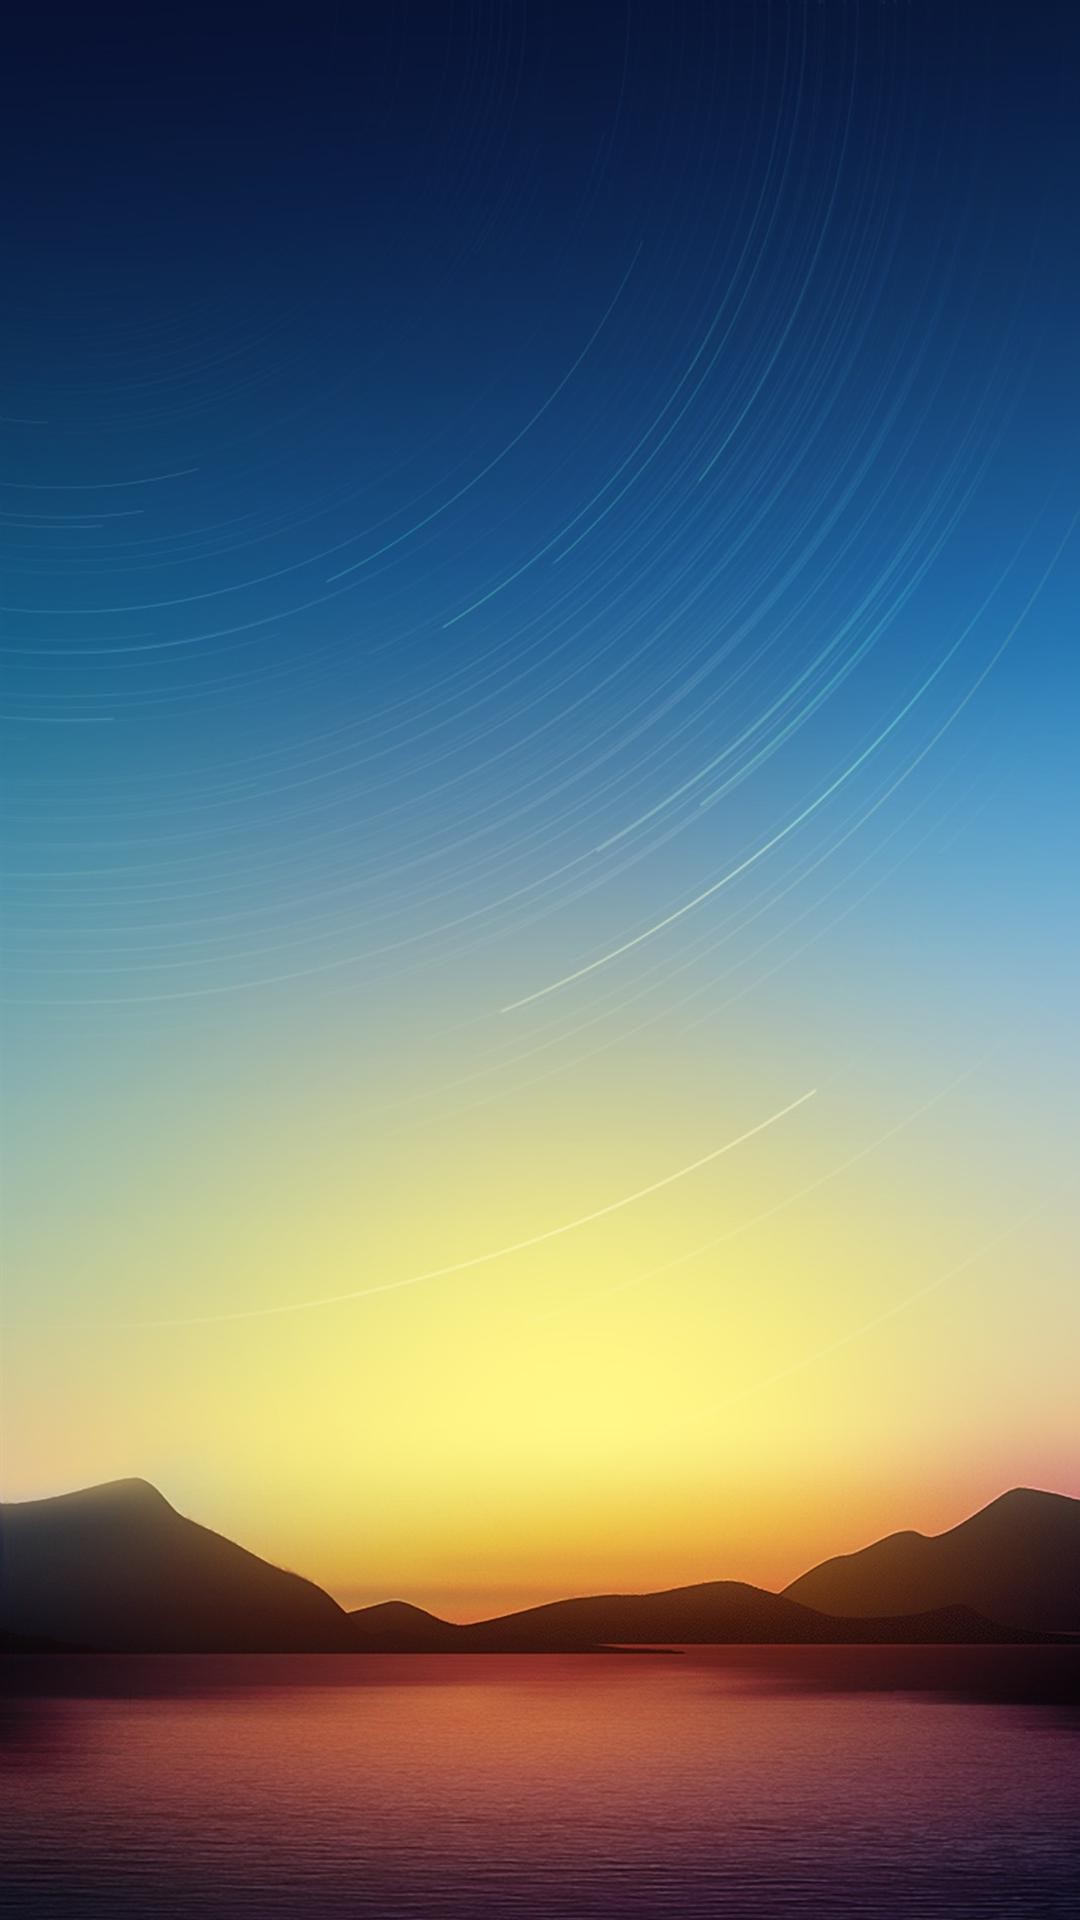 galaxy s4 hd wallpapers